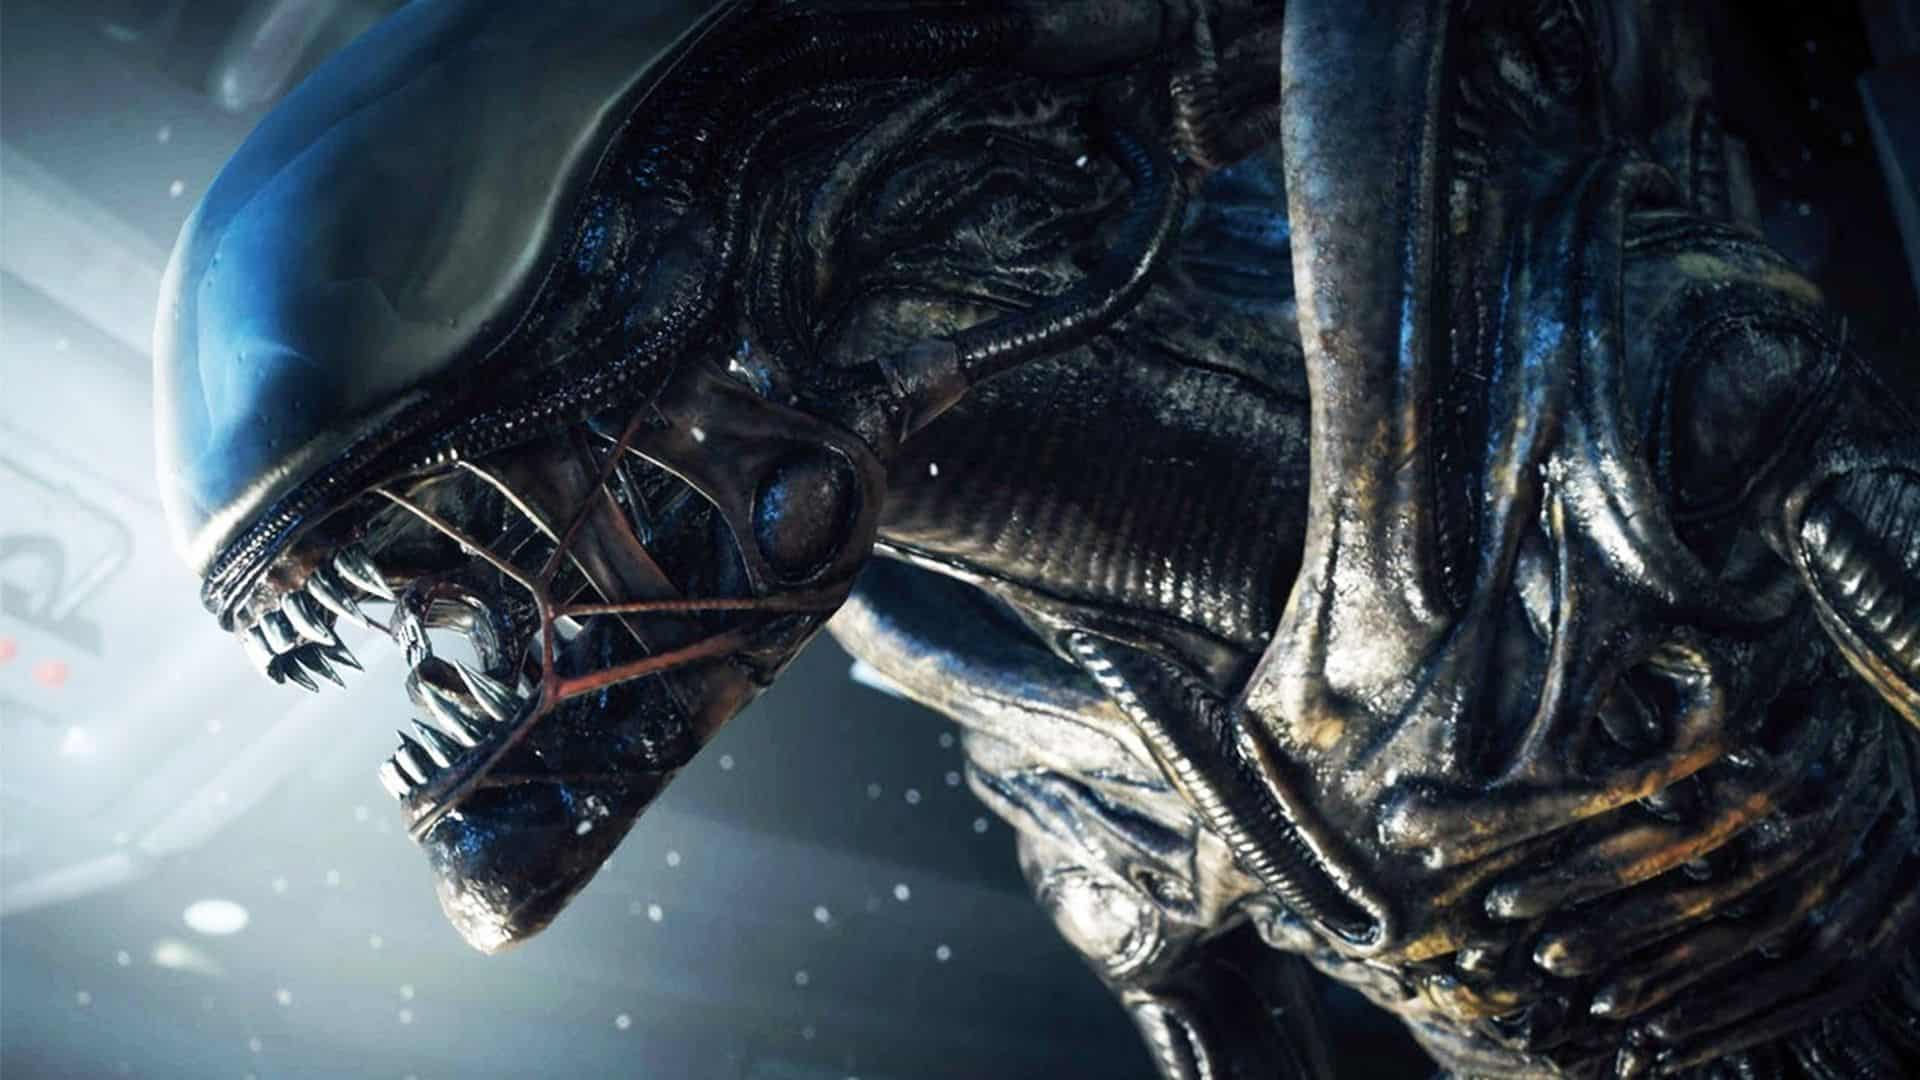 -su-Corporate-Lockdown-il-primo-dei-cinque-DLC-di-Alien-Isolation.jpg